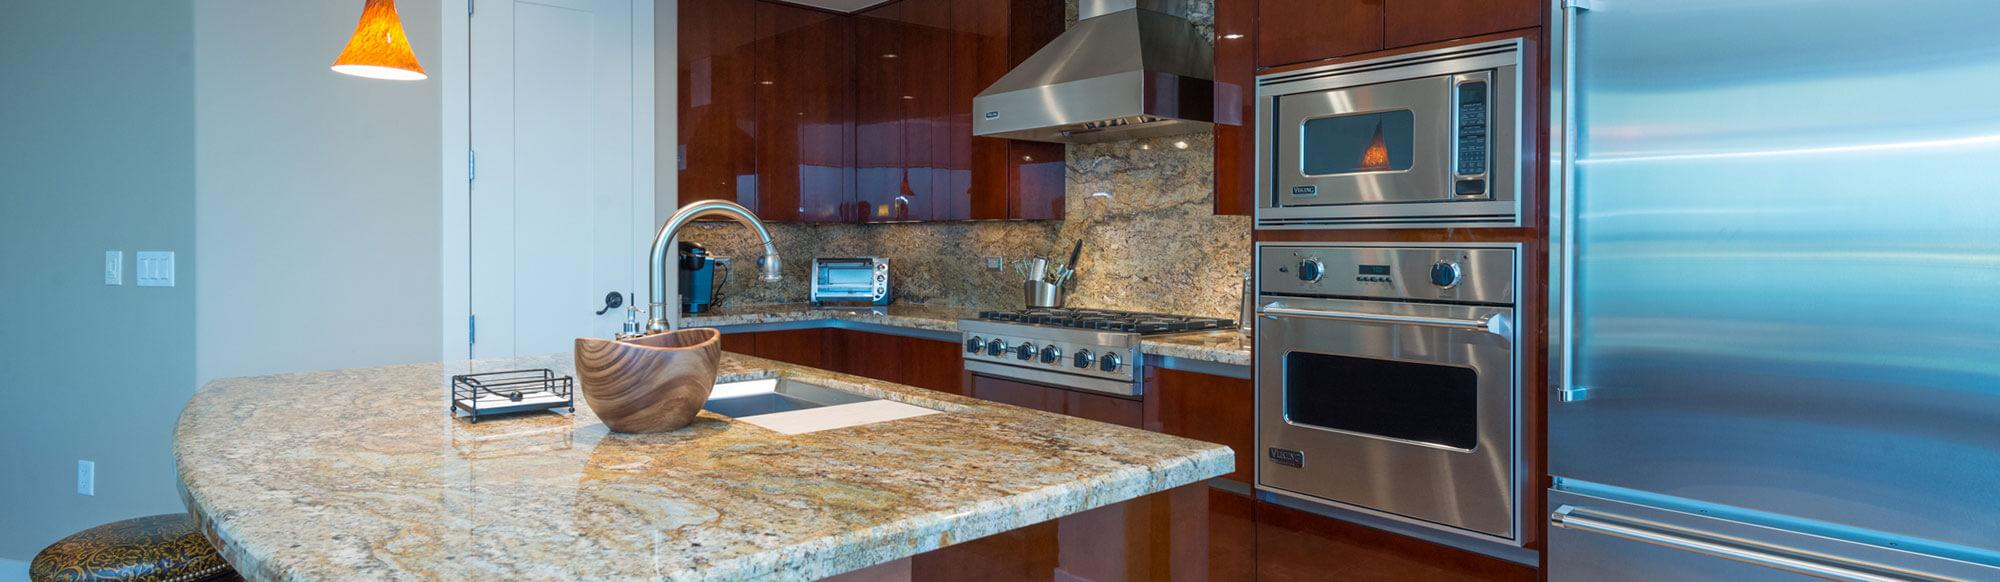 kitchen in Queen Creek home for sale